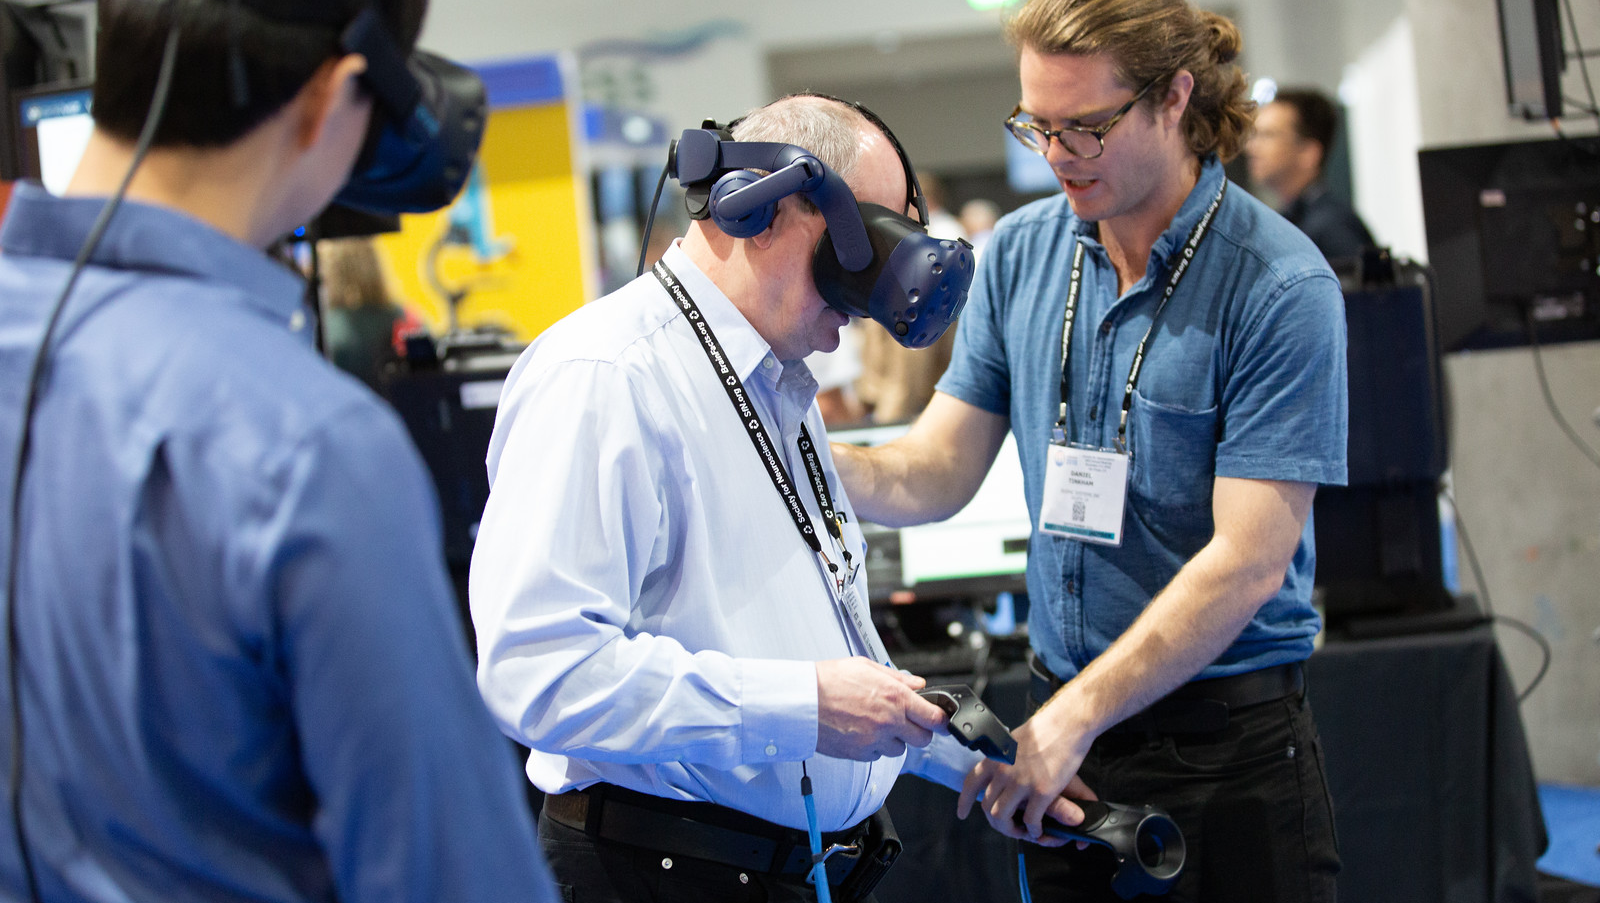 Scientists experience virtual reality at Neuroscience 2018